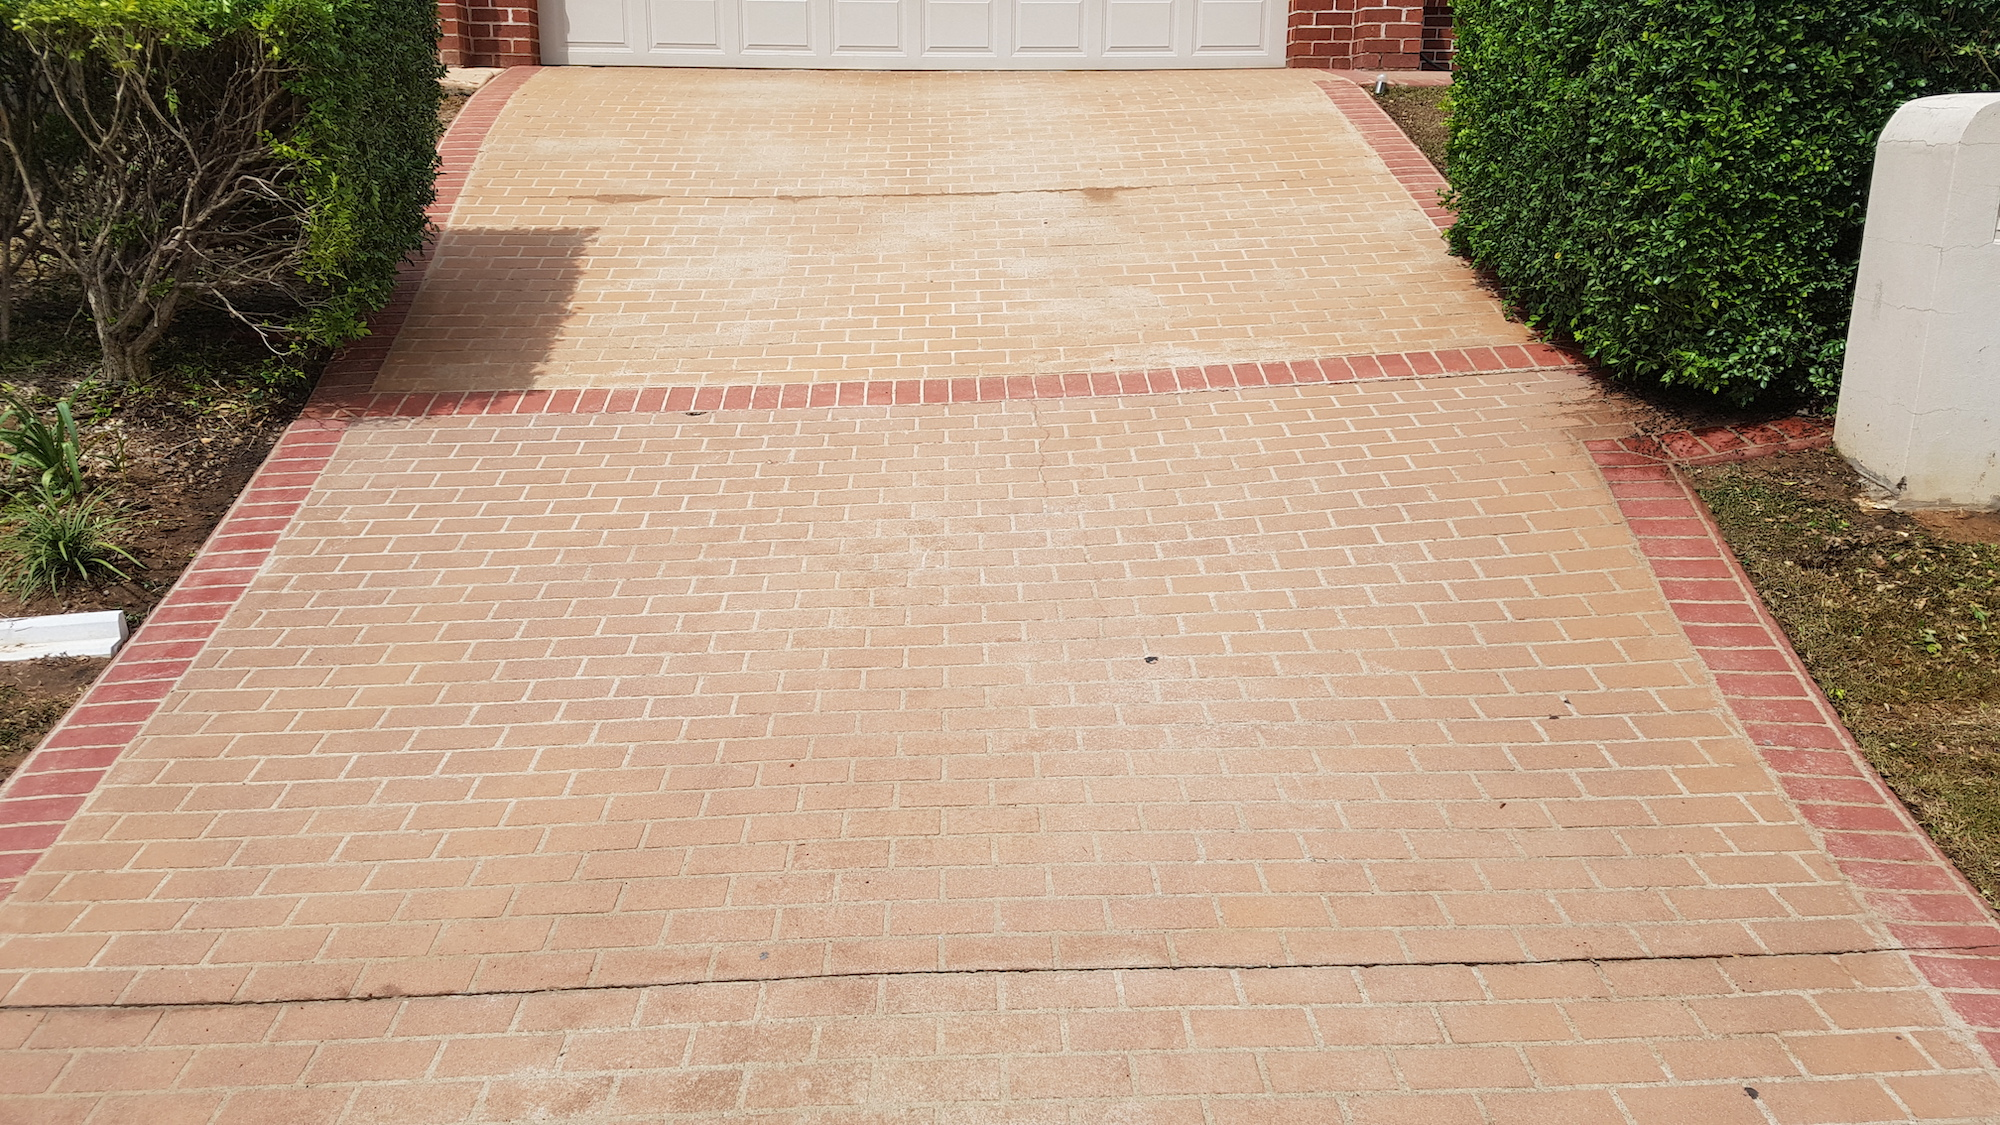 Coloured concrete driveway - after low pressure cleaning